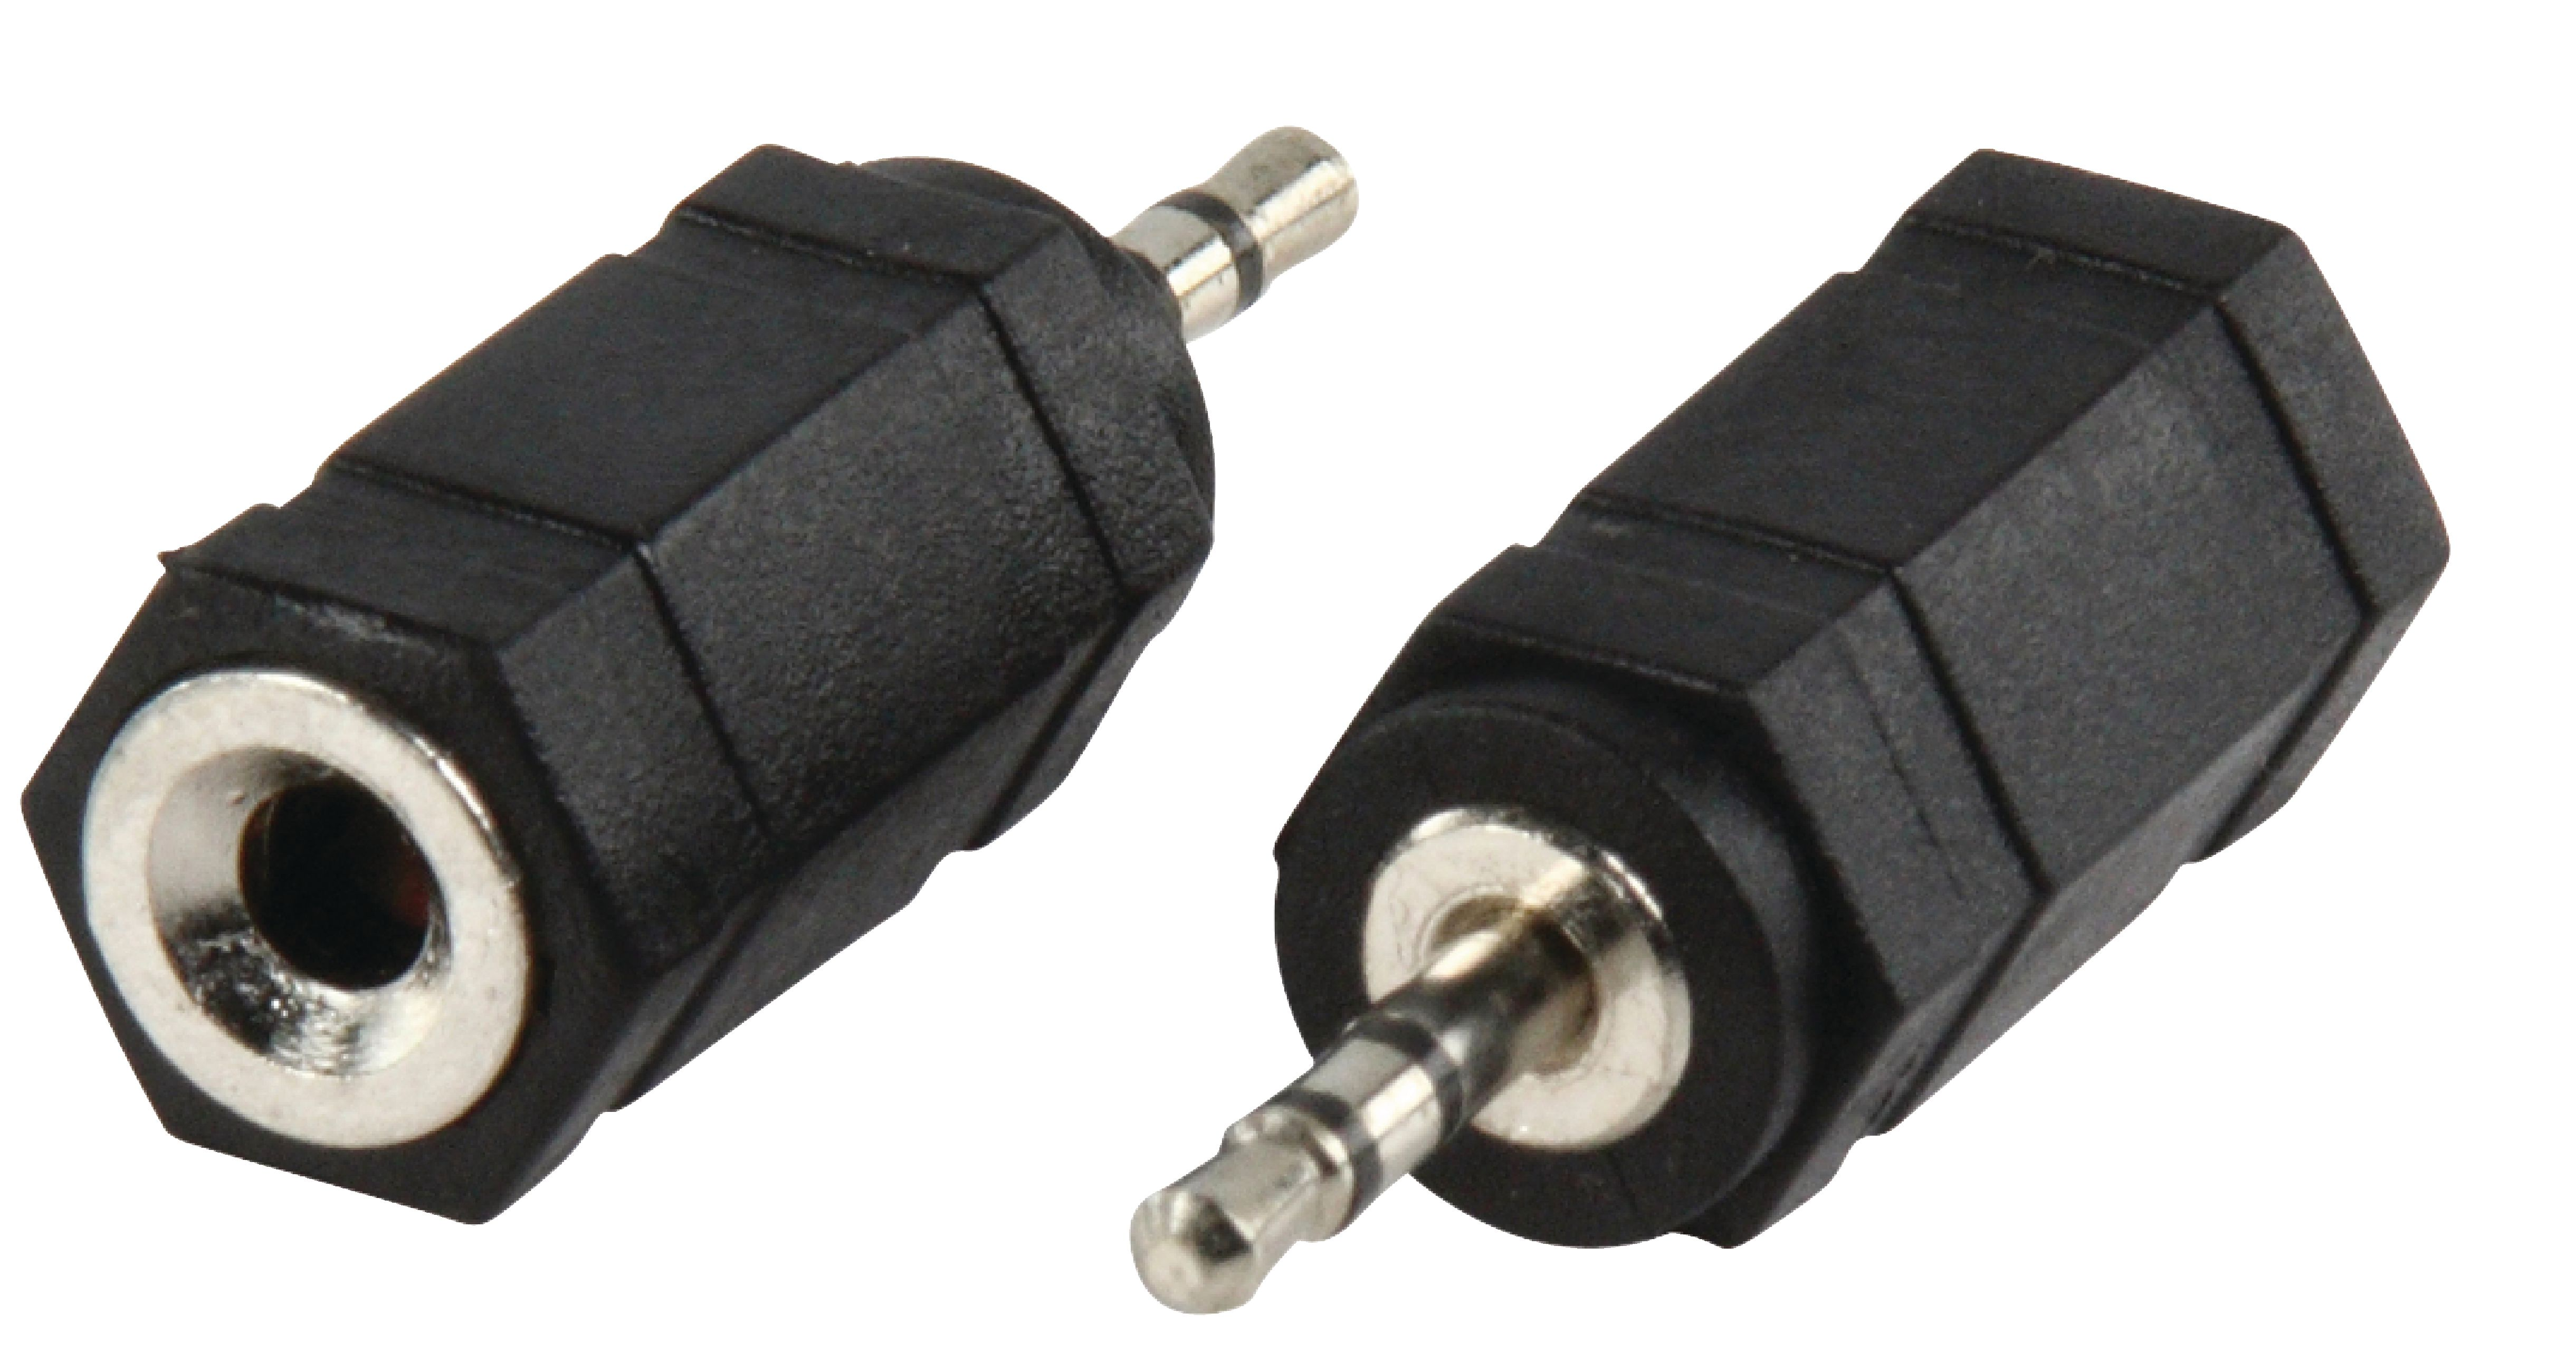 STEREO AUDIO ADAPTER 2.5 MM MALE - 3.5 MM FEMALE BLACK